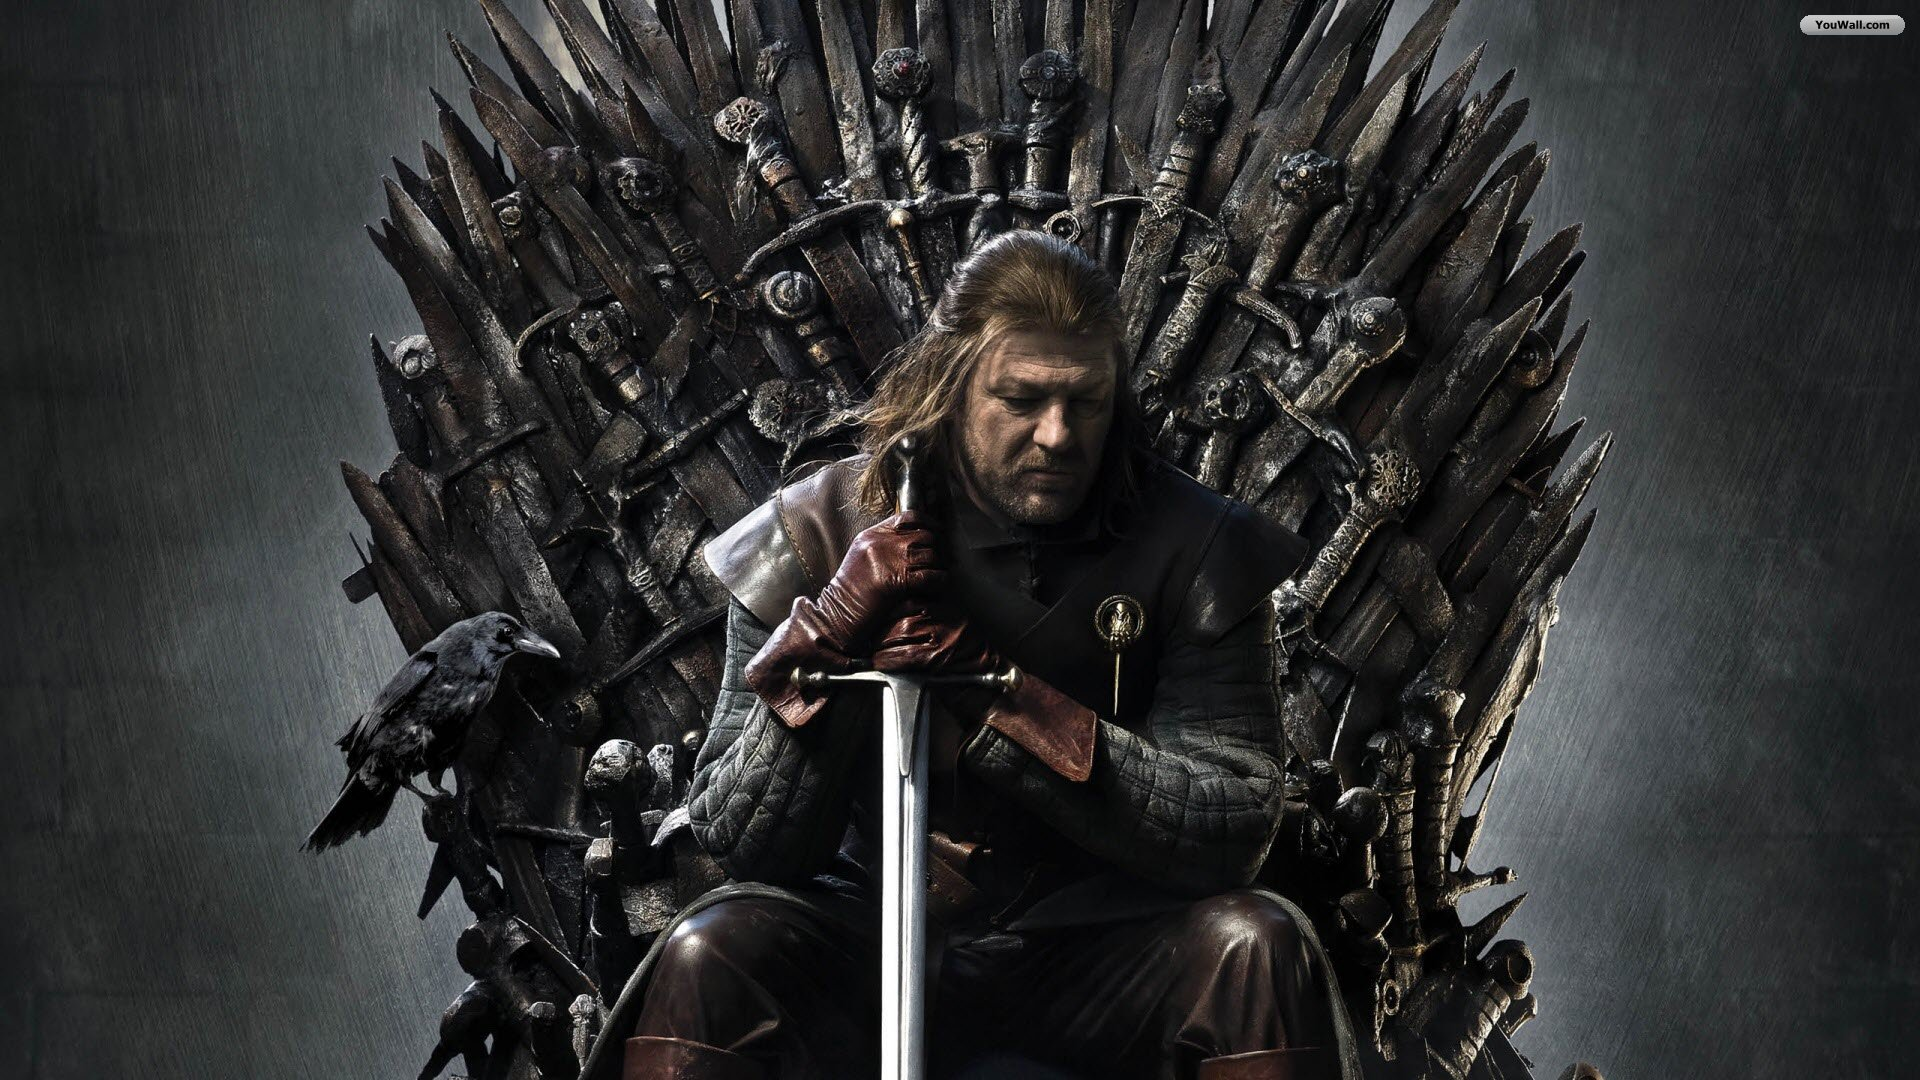 Game of Thrones (2014 video game) - Wikipedia